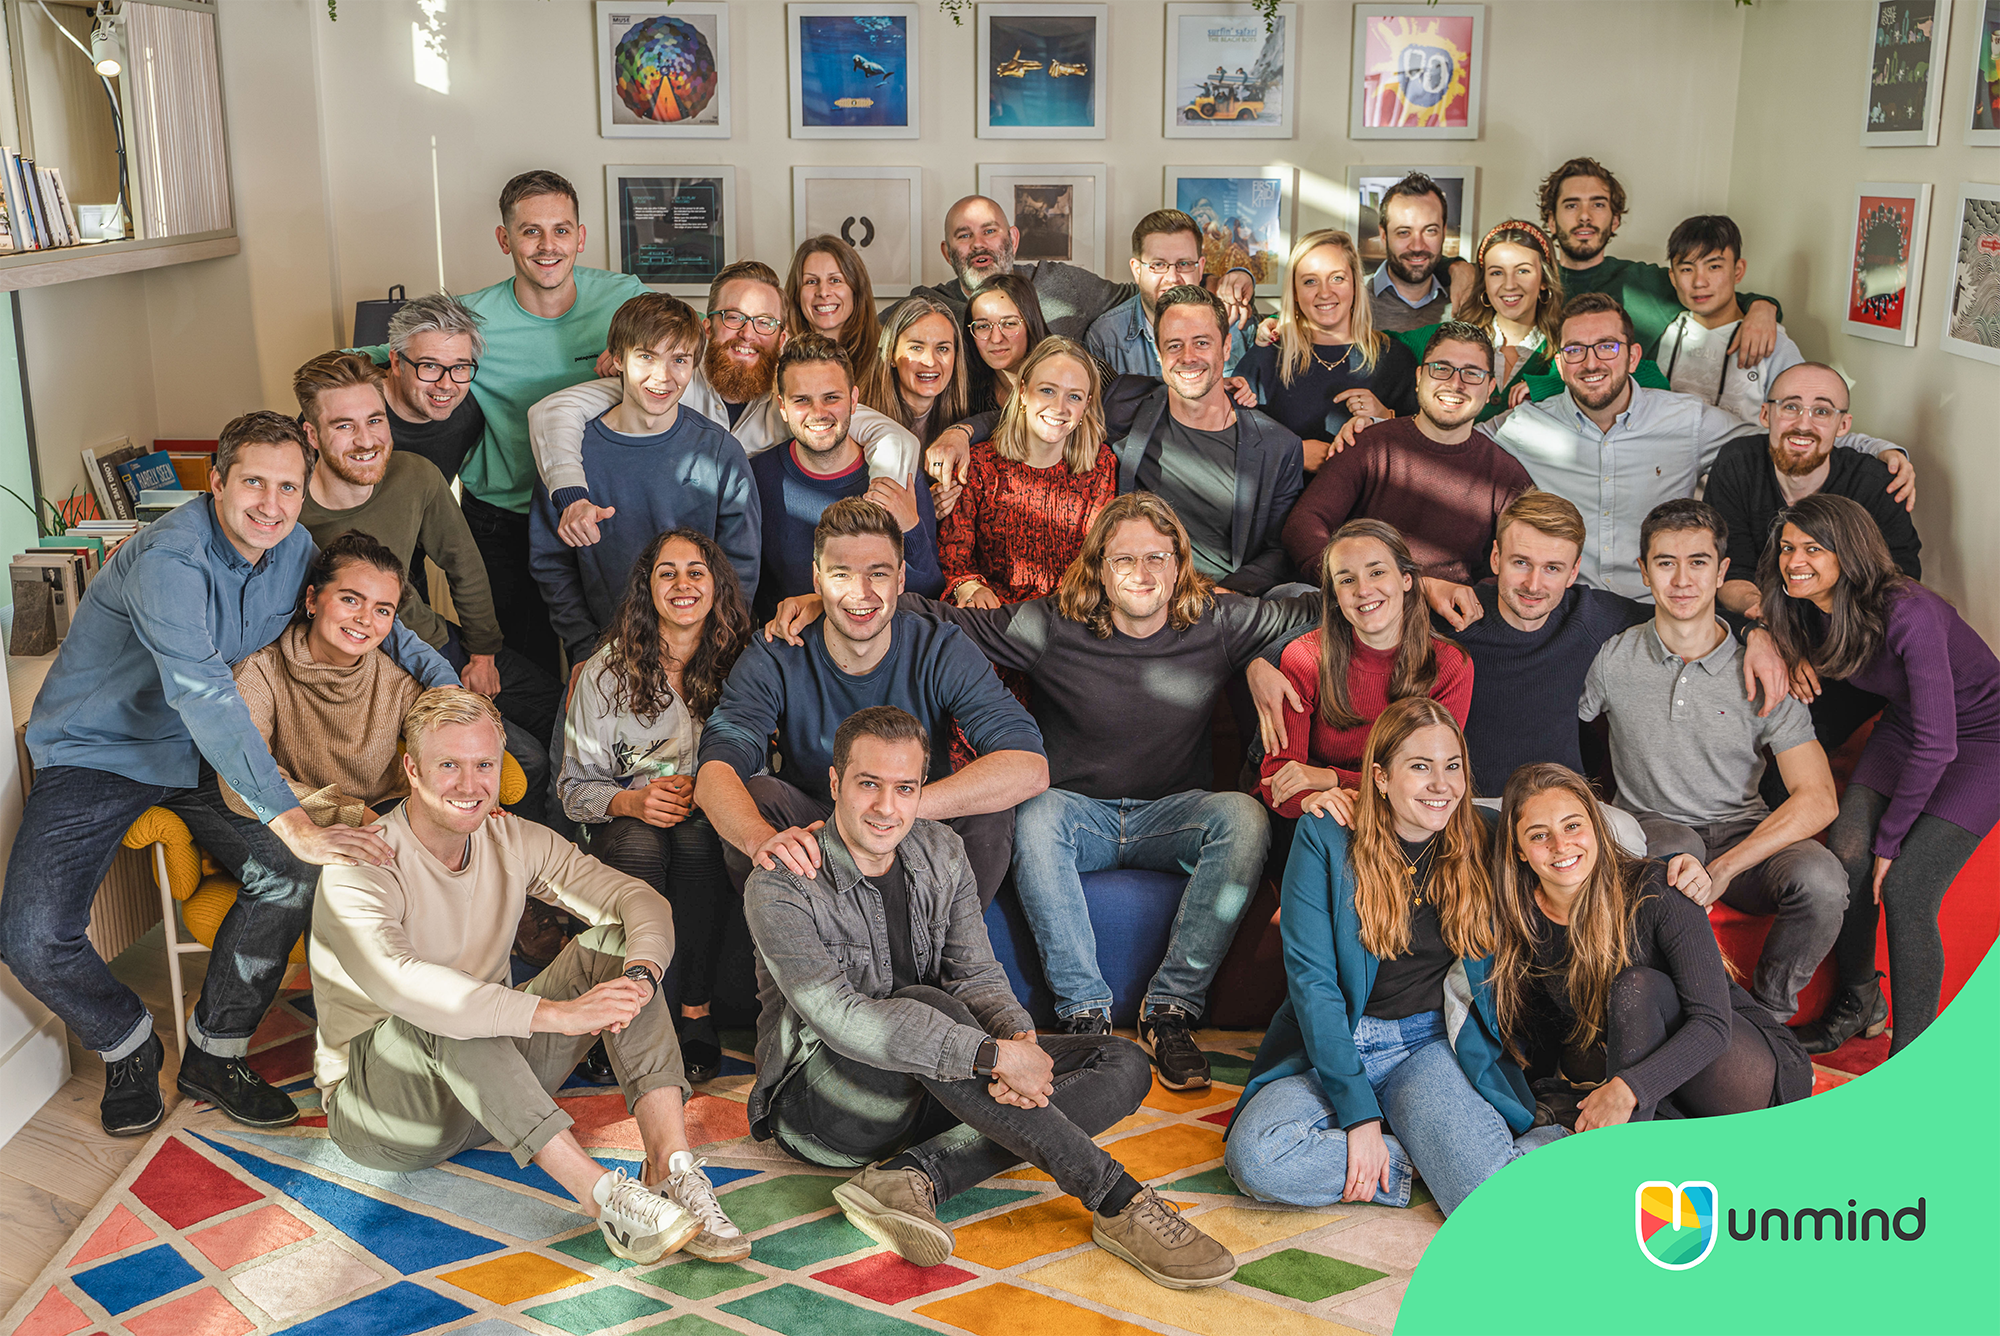 The Unmind team huddle to celebrate their successful Series A funding round in their UK office.